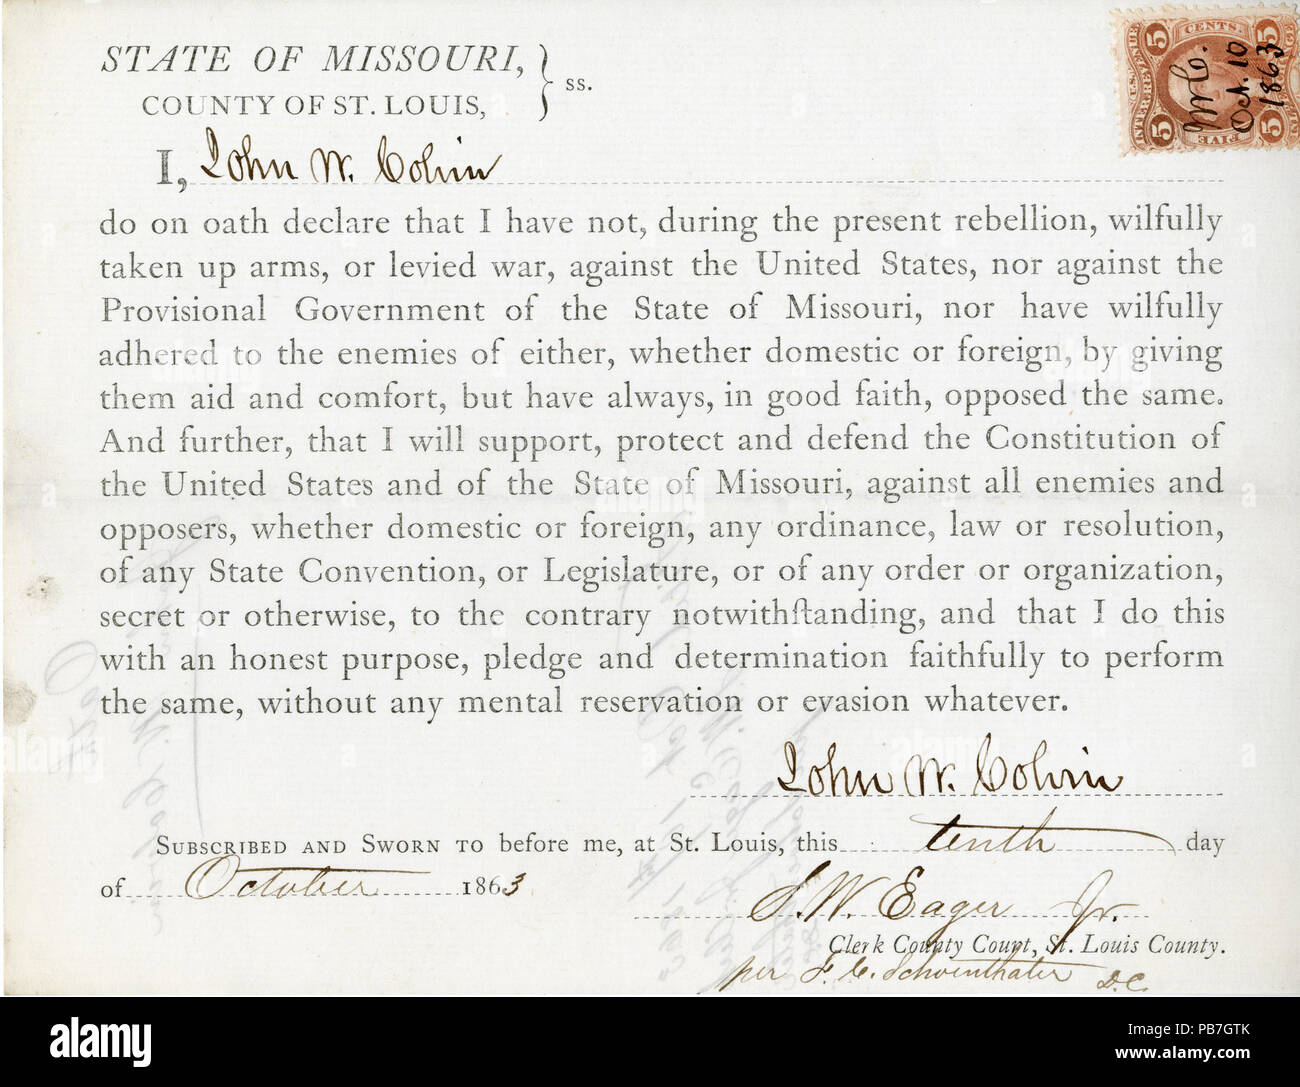 951 Loyalty oath of John W. Colvin of Missouri, County of St. Louis - Stock Image